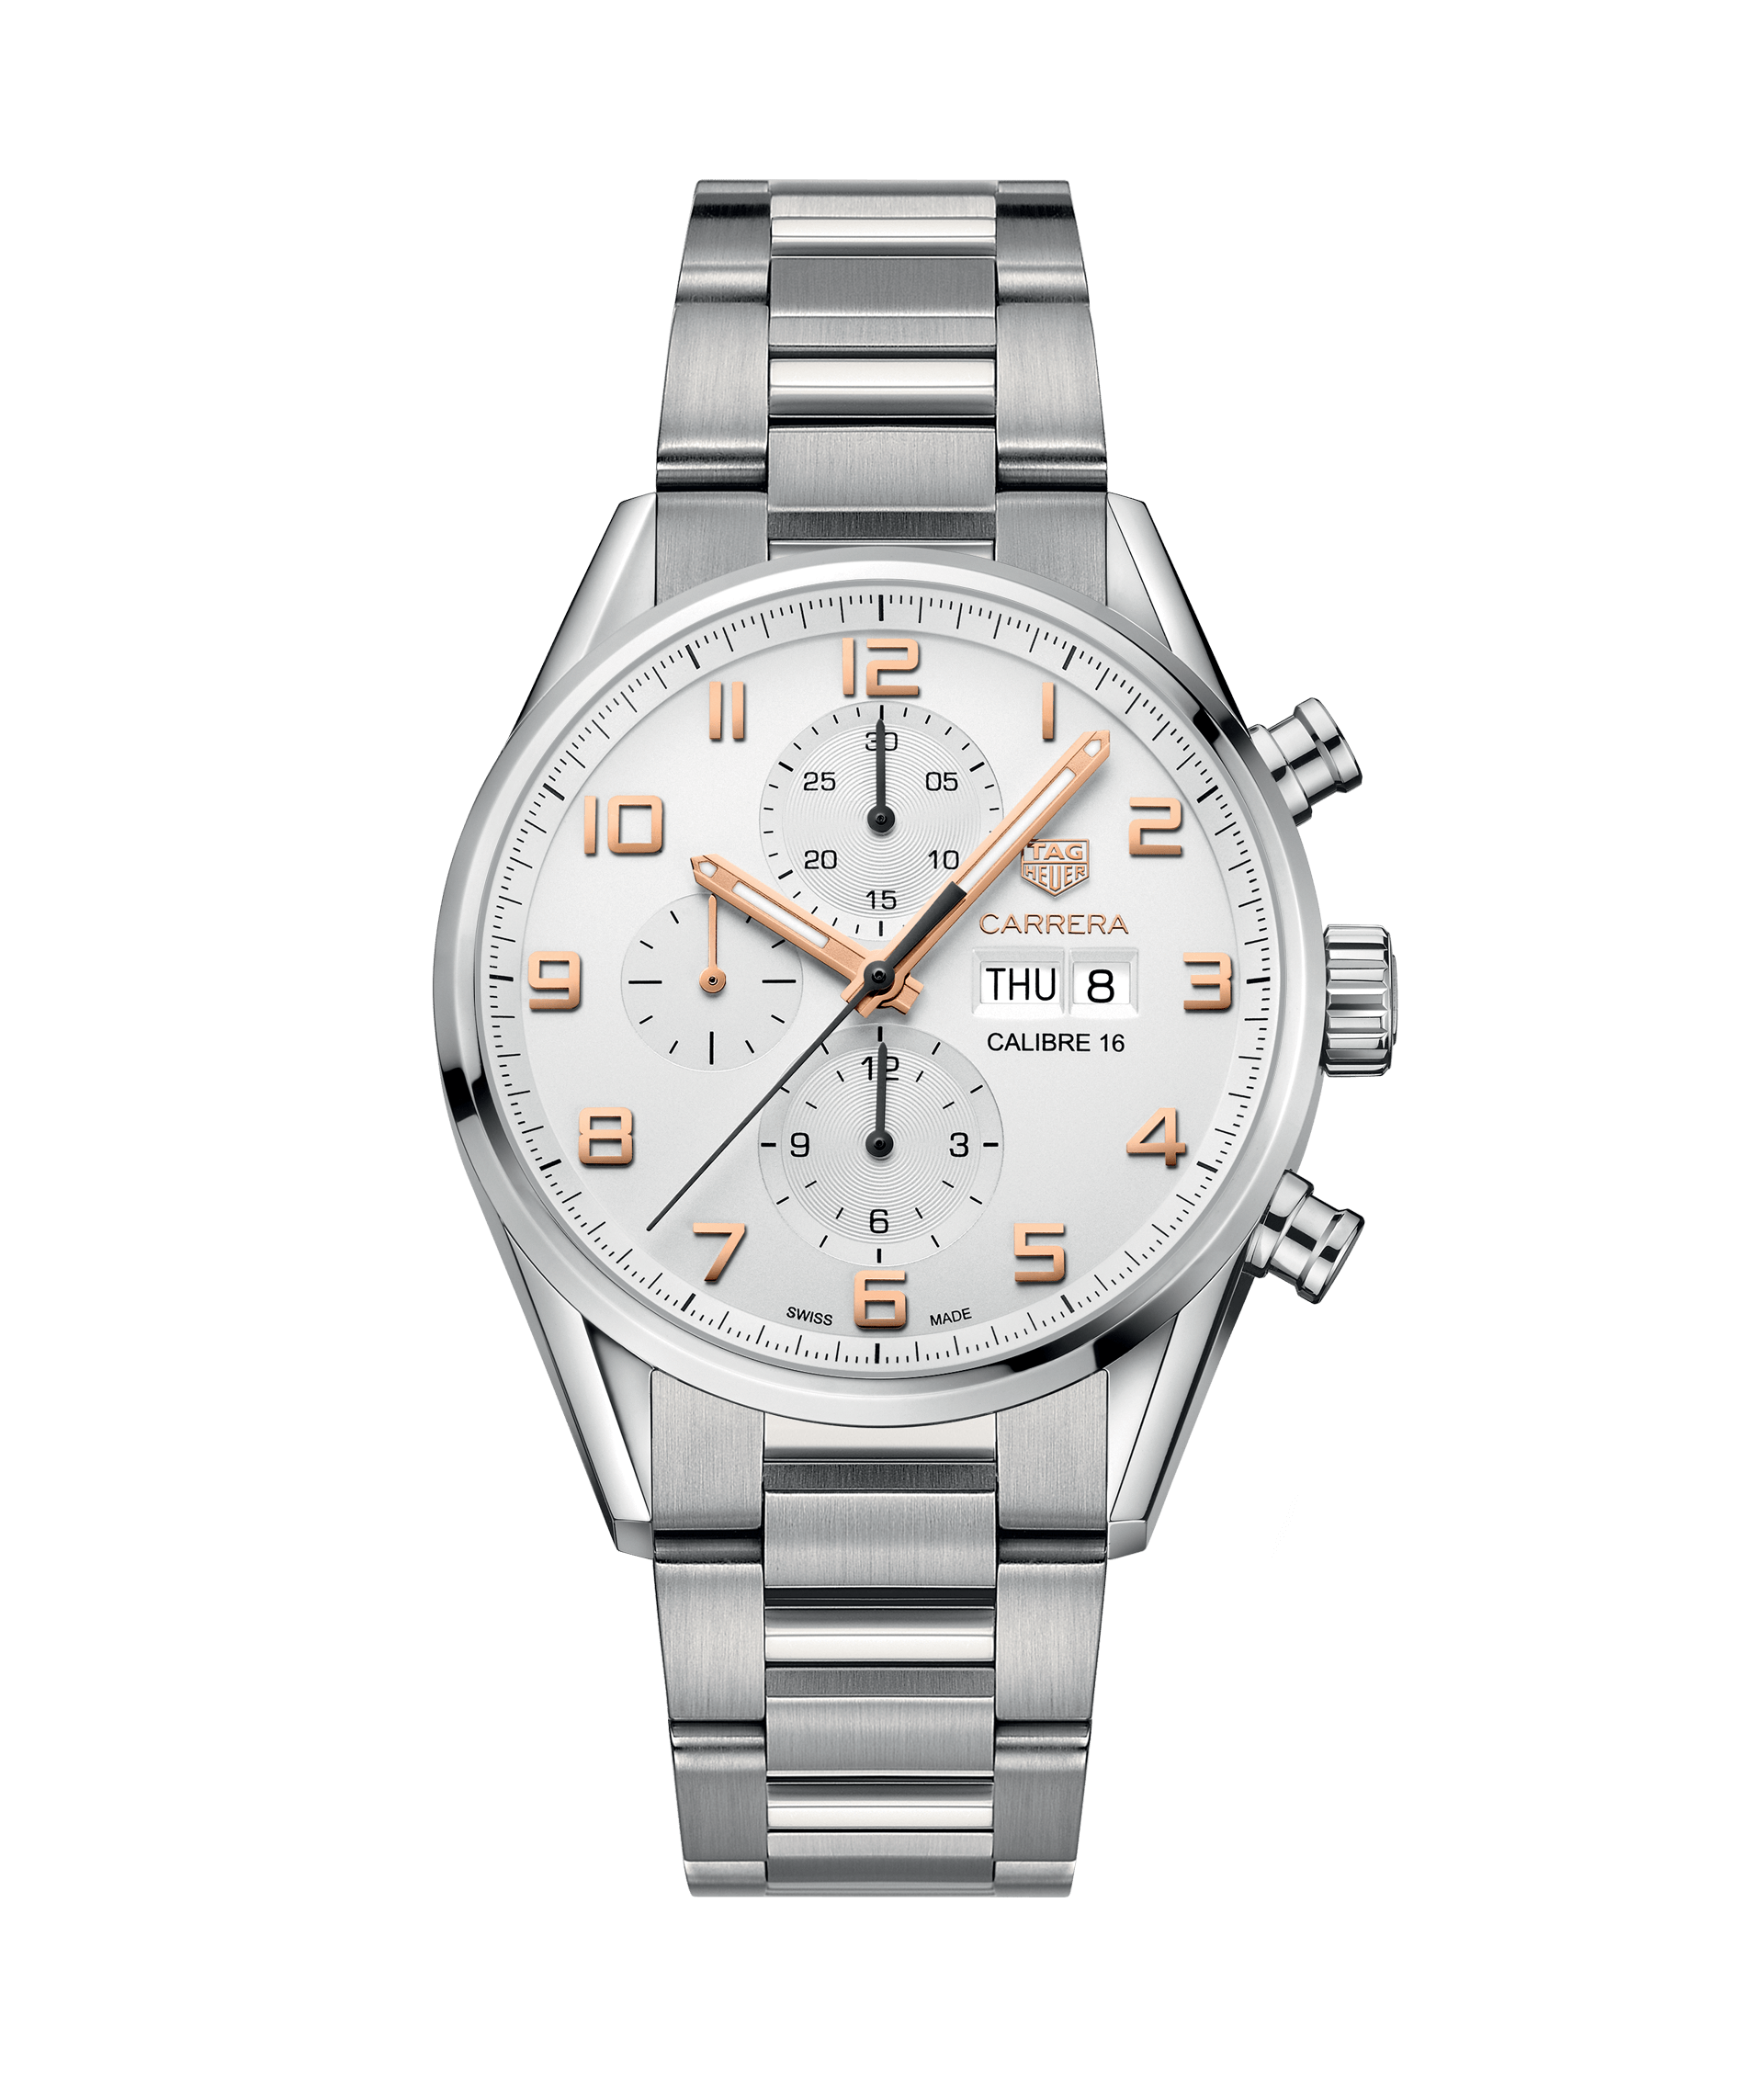 TAG HEUER CARRERA CALIBRE 16 AUTOMATIC CHRONOGRAPH 100m - 43mm - CV2A1AC.BA0738